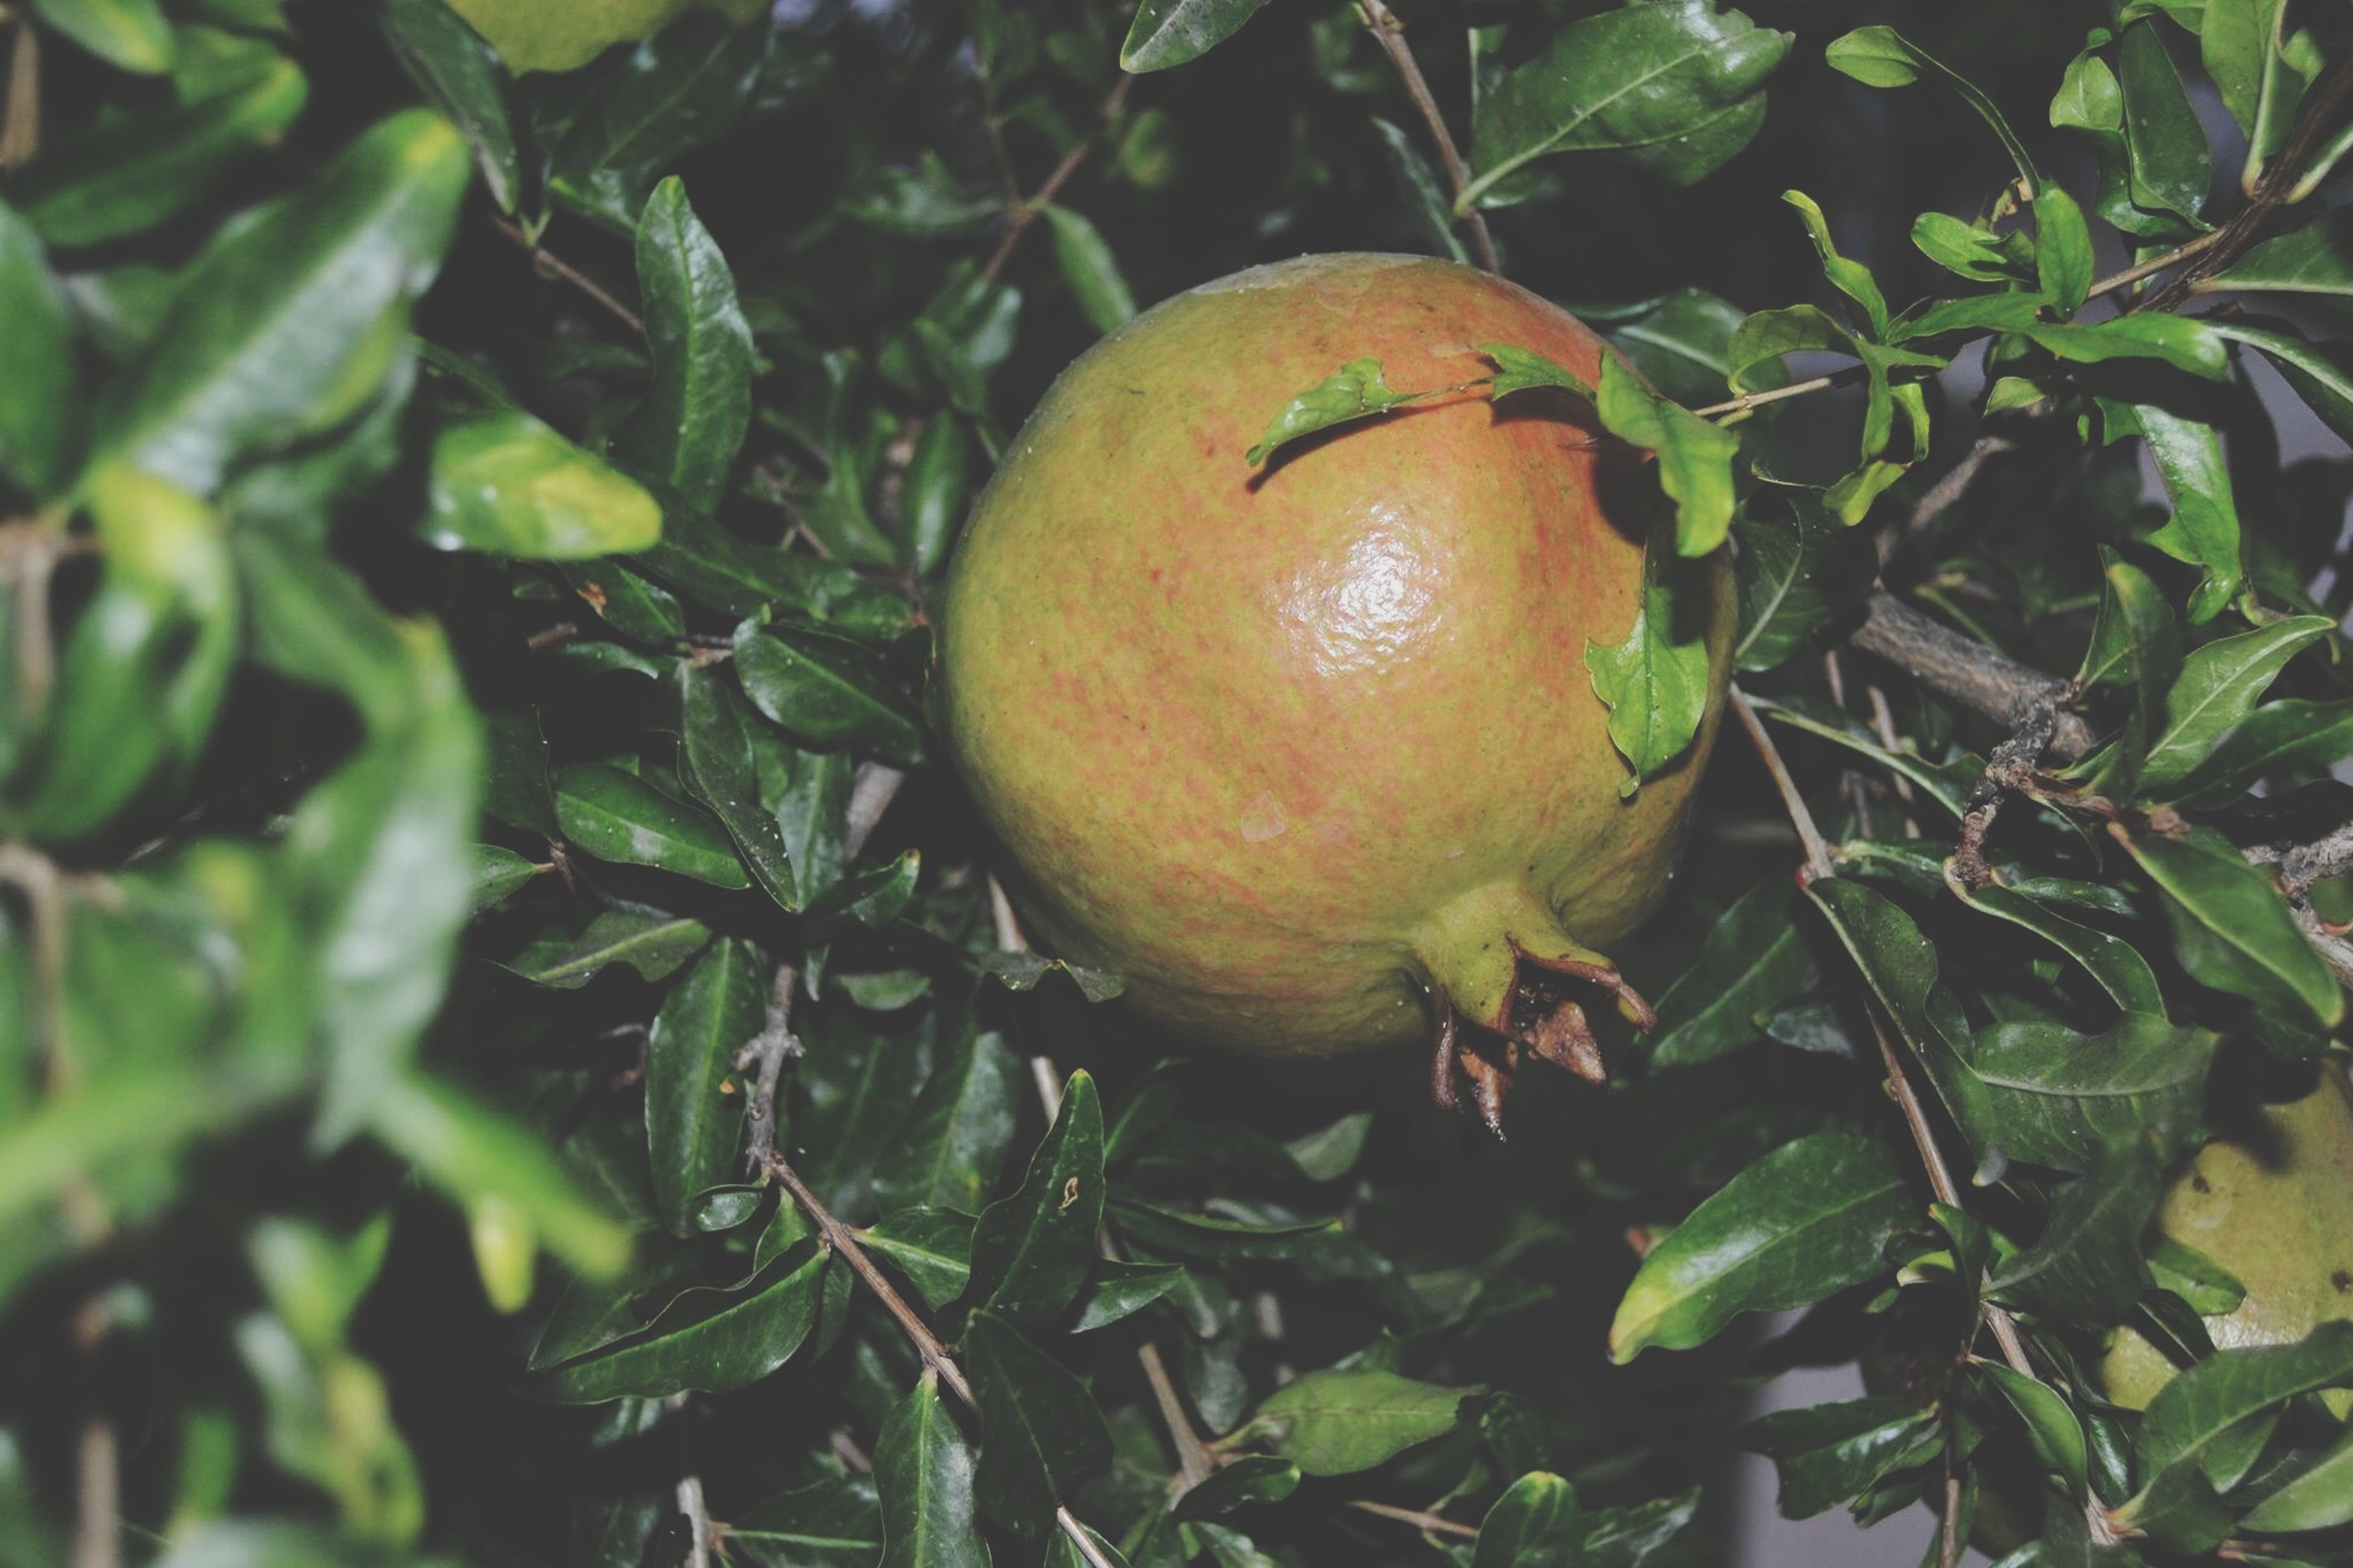 food and drink, fruit, food, leaf, healthy eating, freshness, growth, close-up, green color, tree, nature, branch, outdoors, day, no people, ripe, plant, vegetable, focus on foreground, apple - fruit